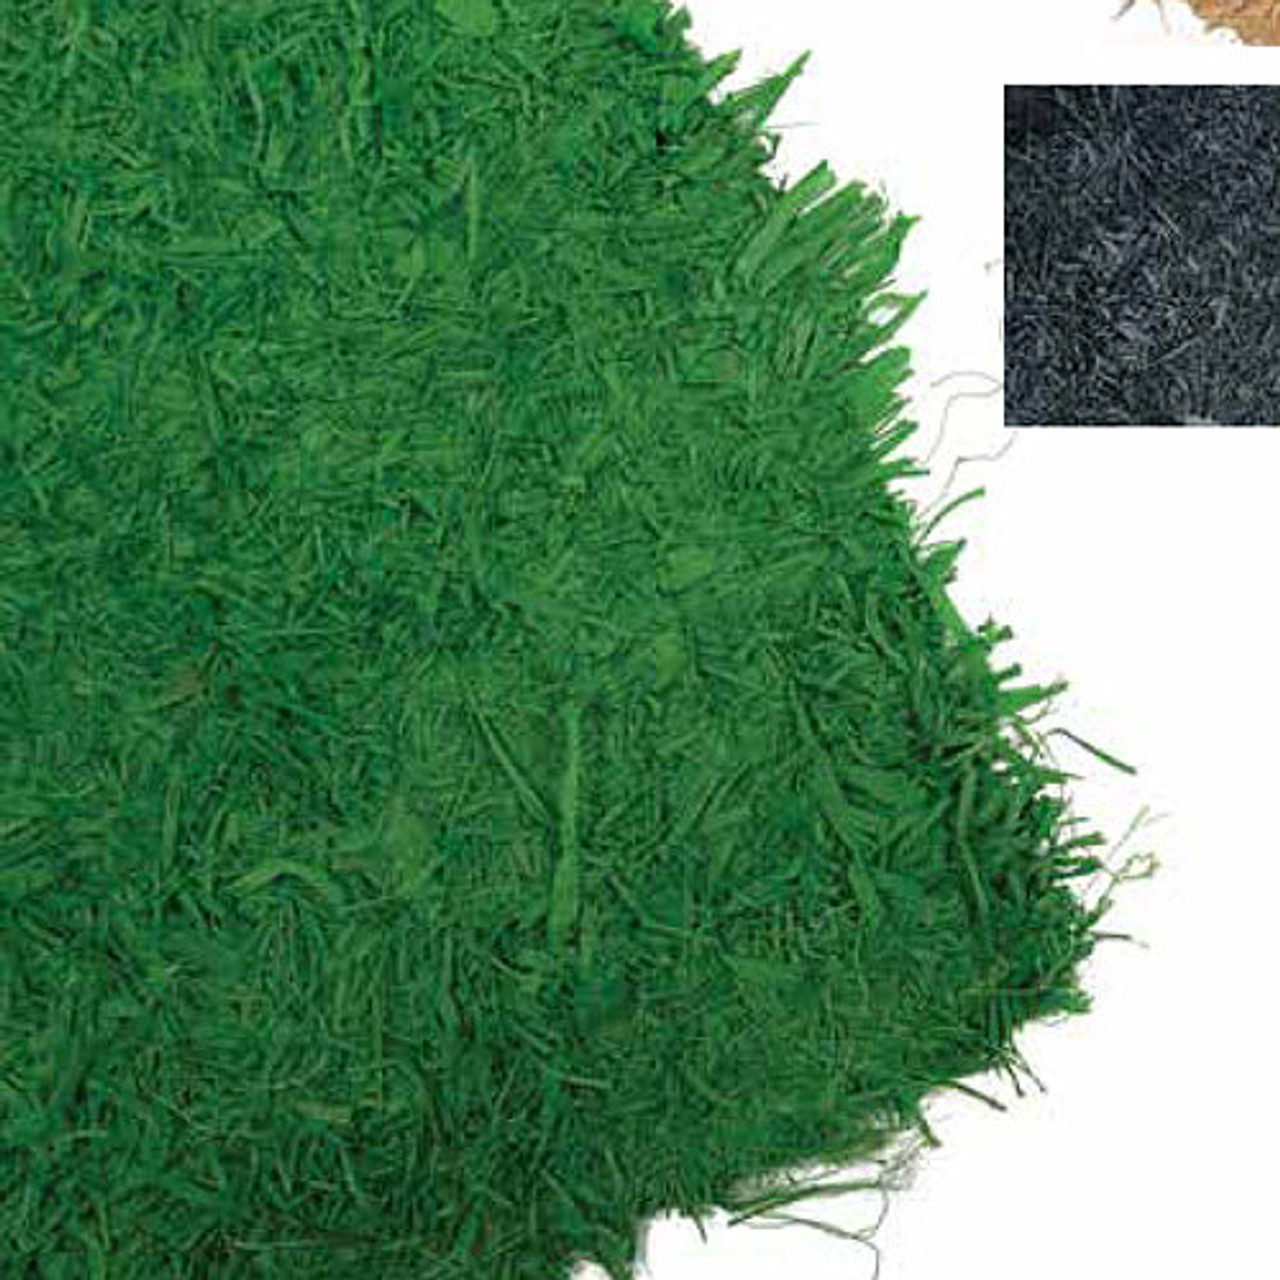 Scatter Grass 3 lb (Prop)  Green